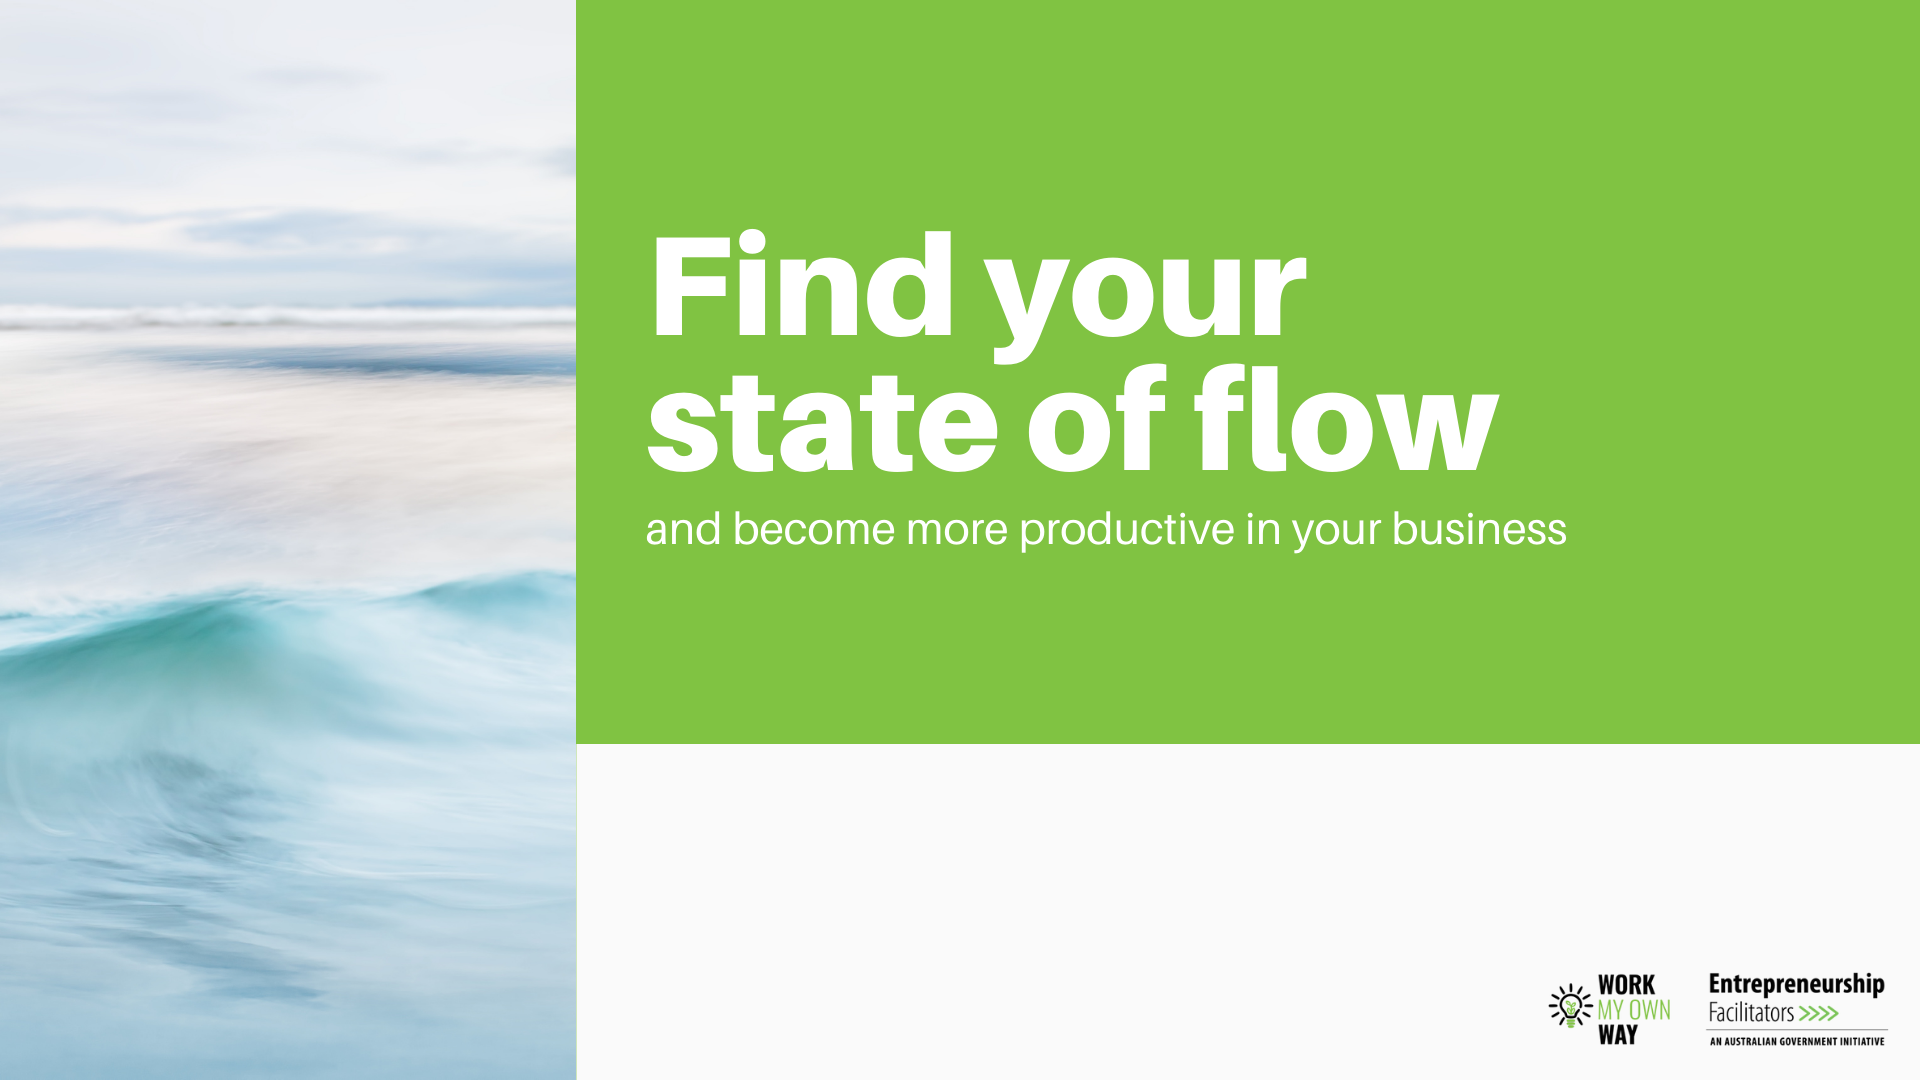 Find your flow in business